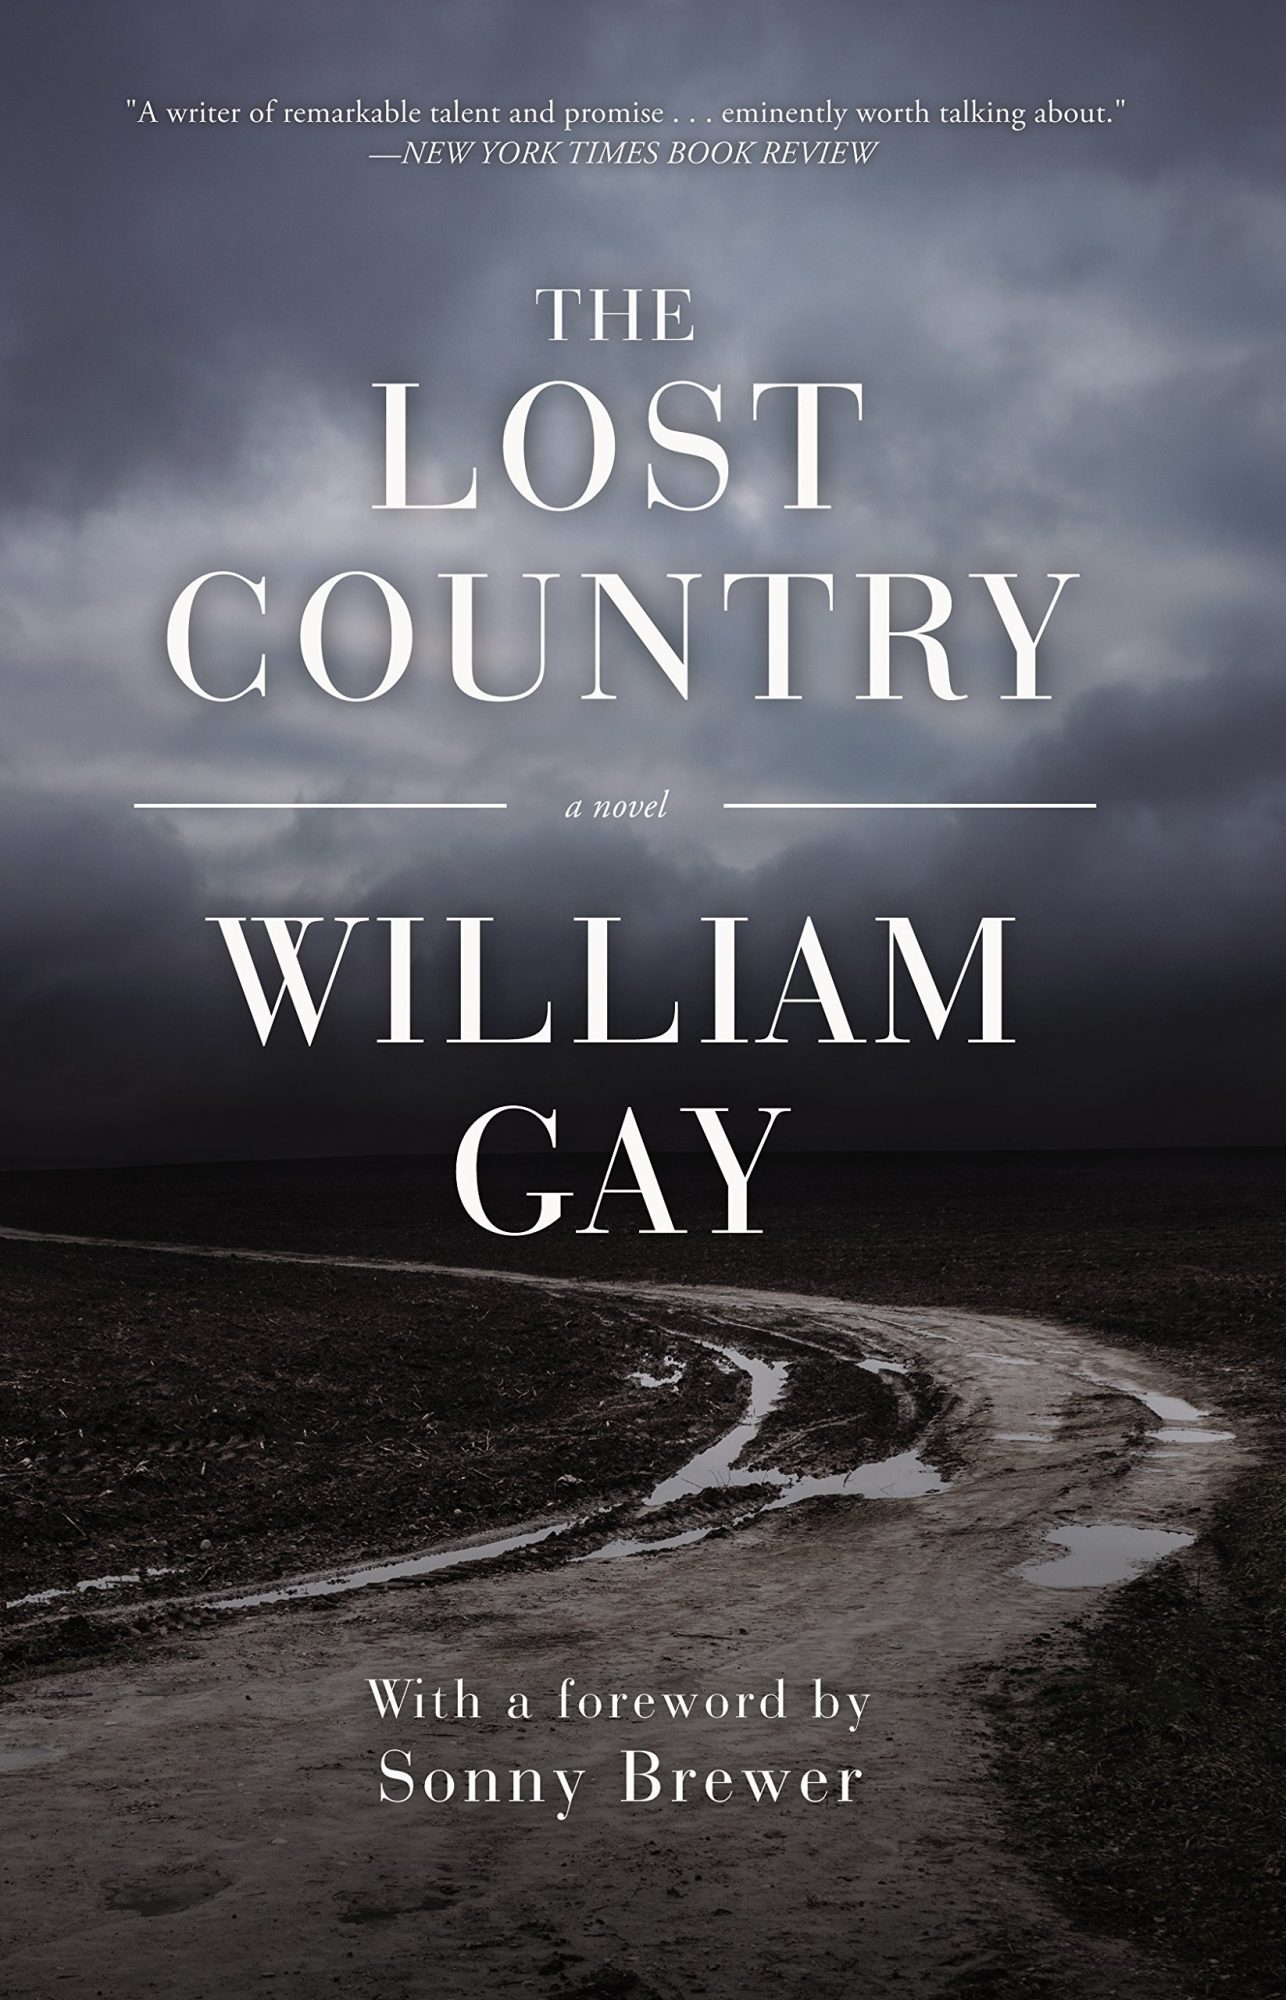 The Lost Country by William Gay